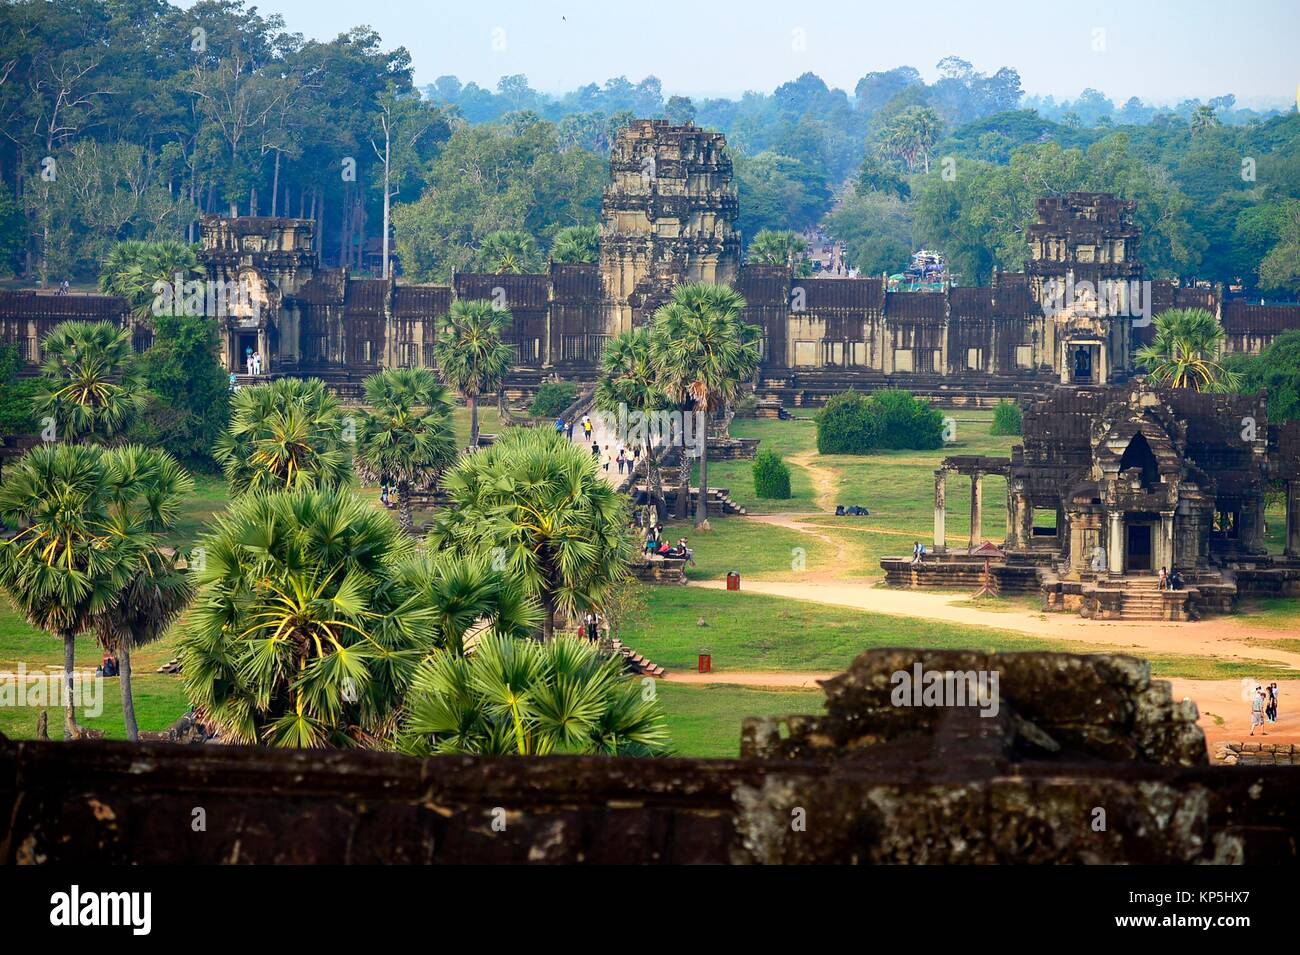 Temple d'Angkor Wat, Cambodge, Indochine, Asie du sud-est Asie,. Photo Stock